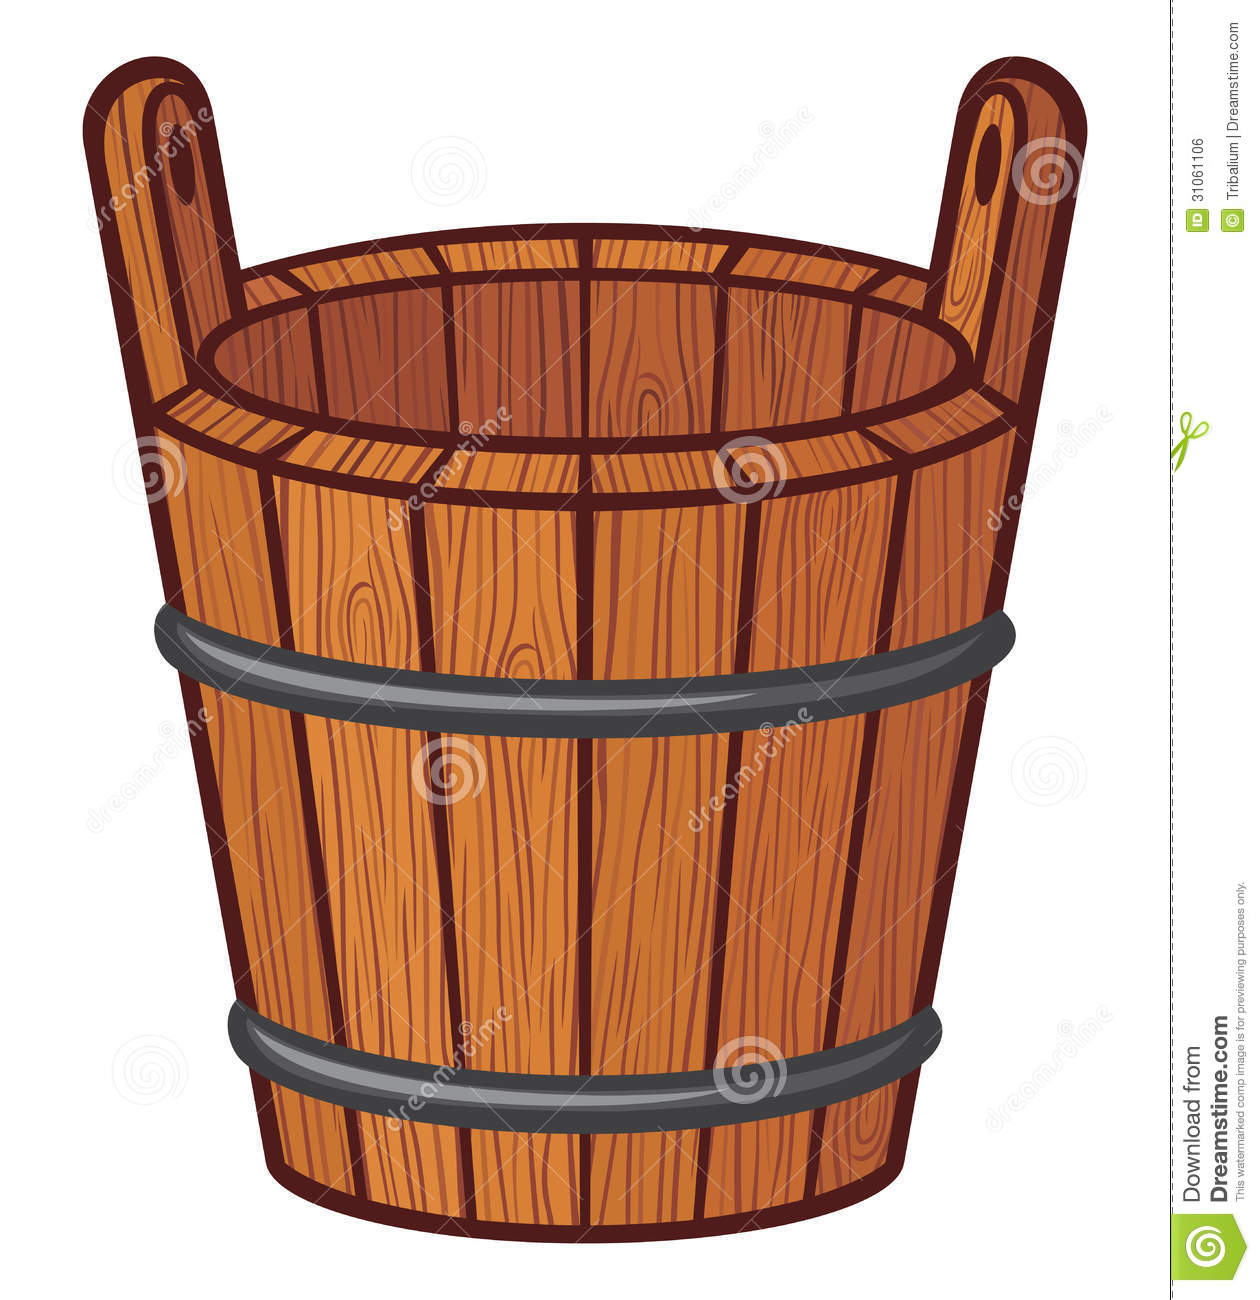 wooden bucket royalty free stock image image 31061106